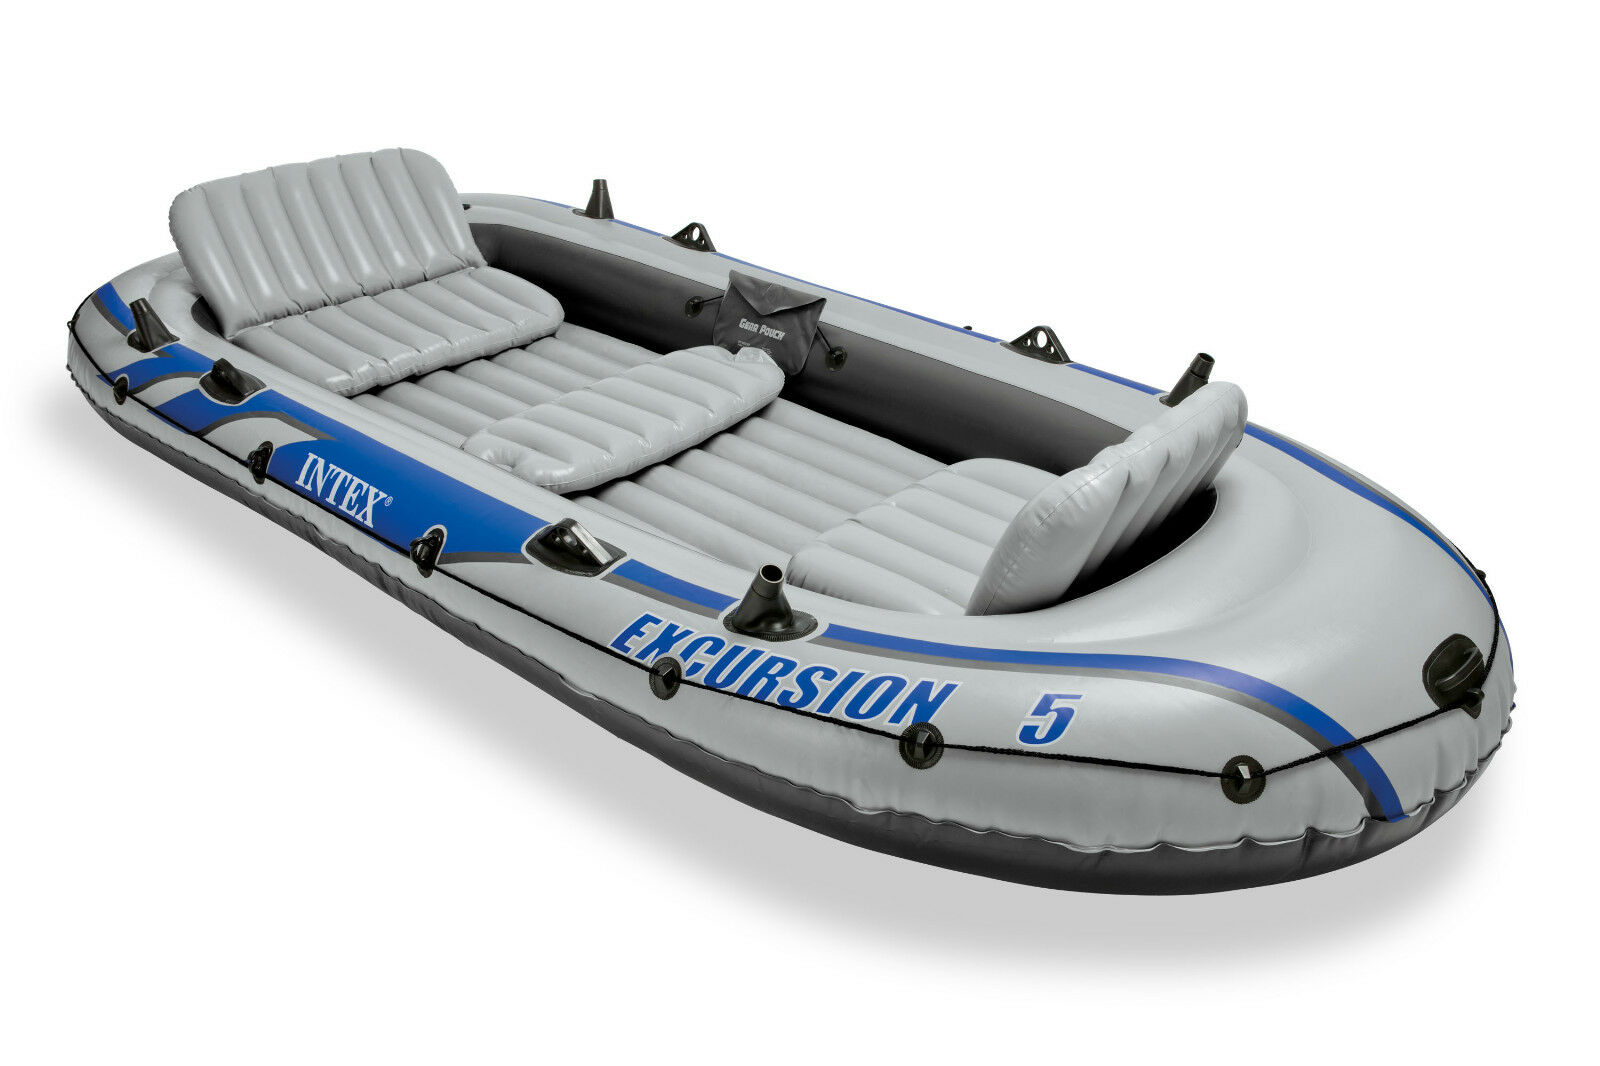 New intex excursion 5 inflatable boat set raft dinghy with for Inflatable fishing boats